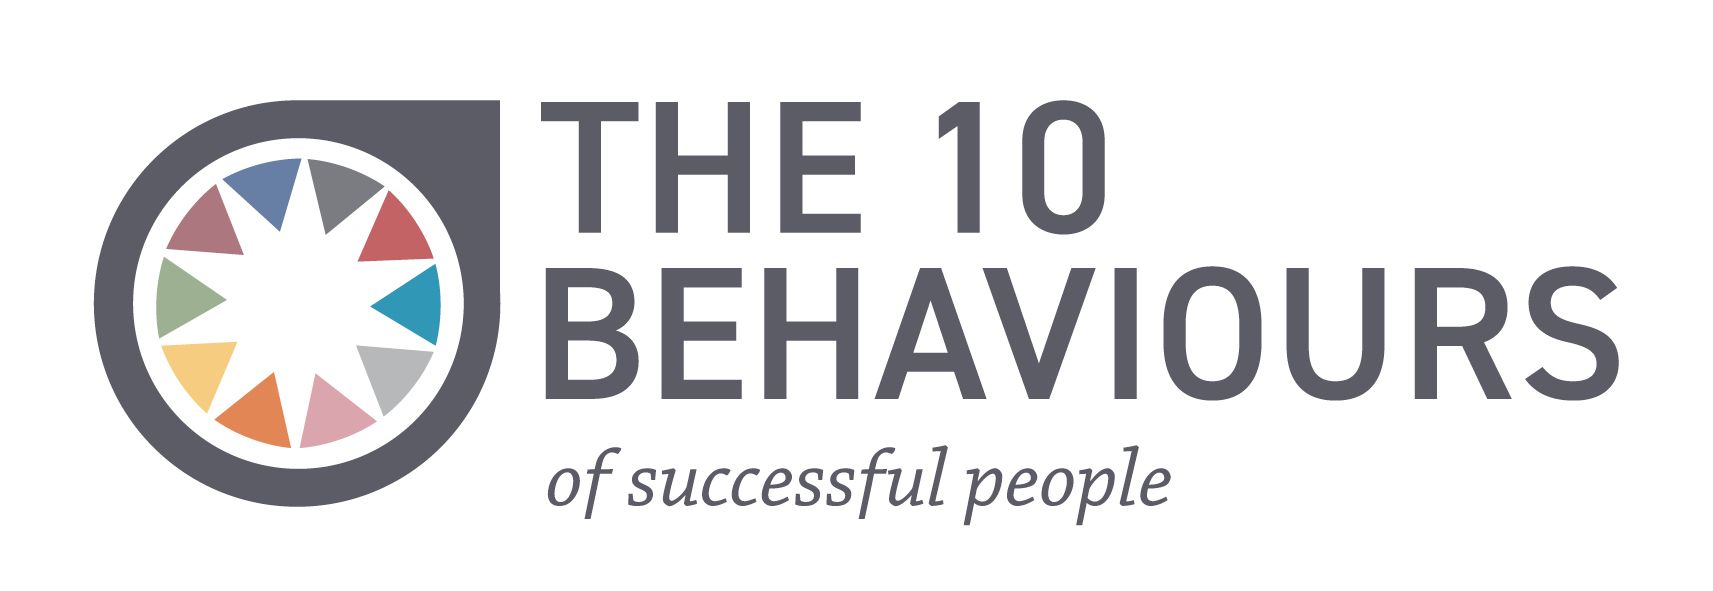 The 10 Behaviours of Successful People logo